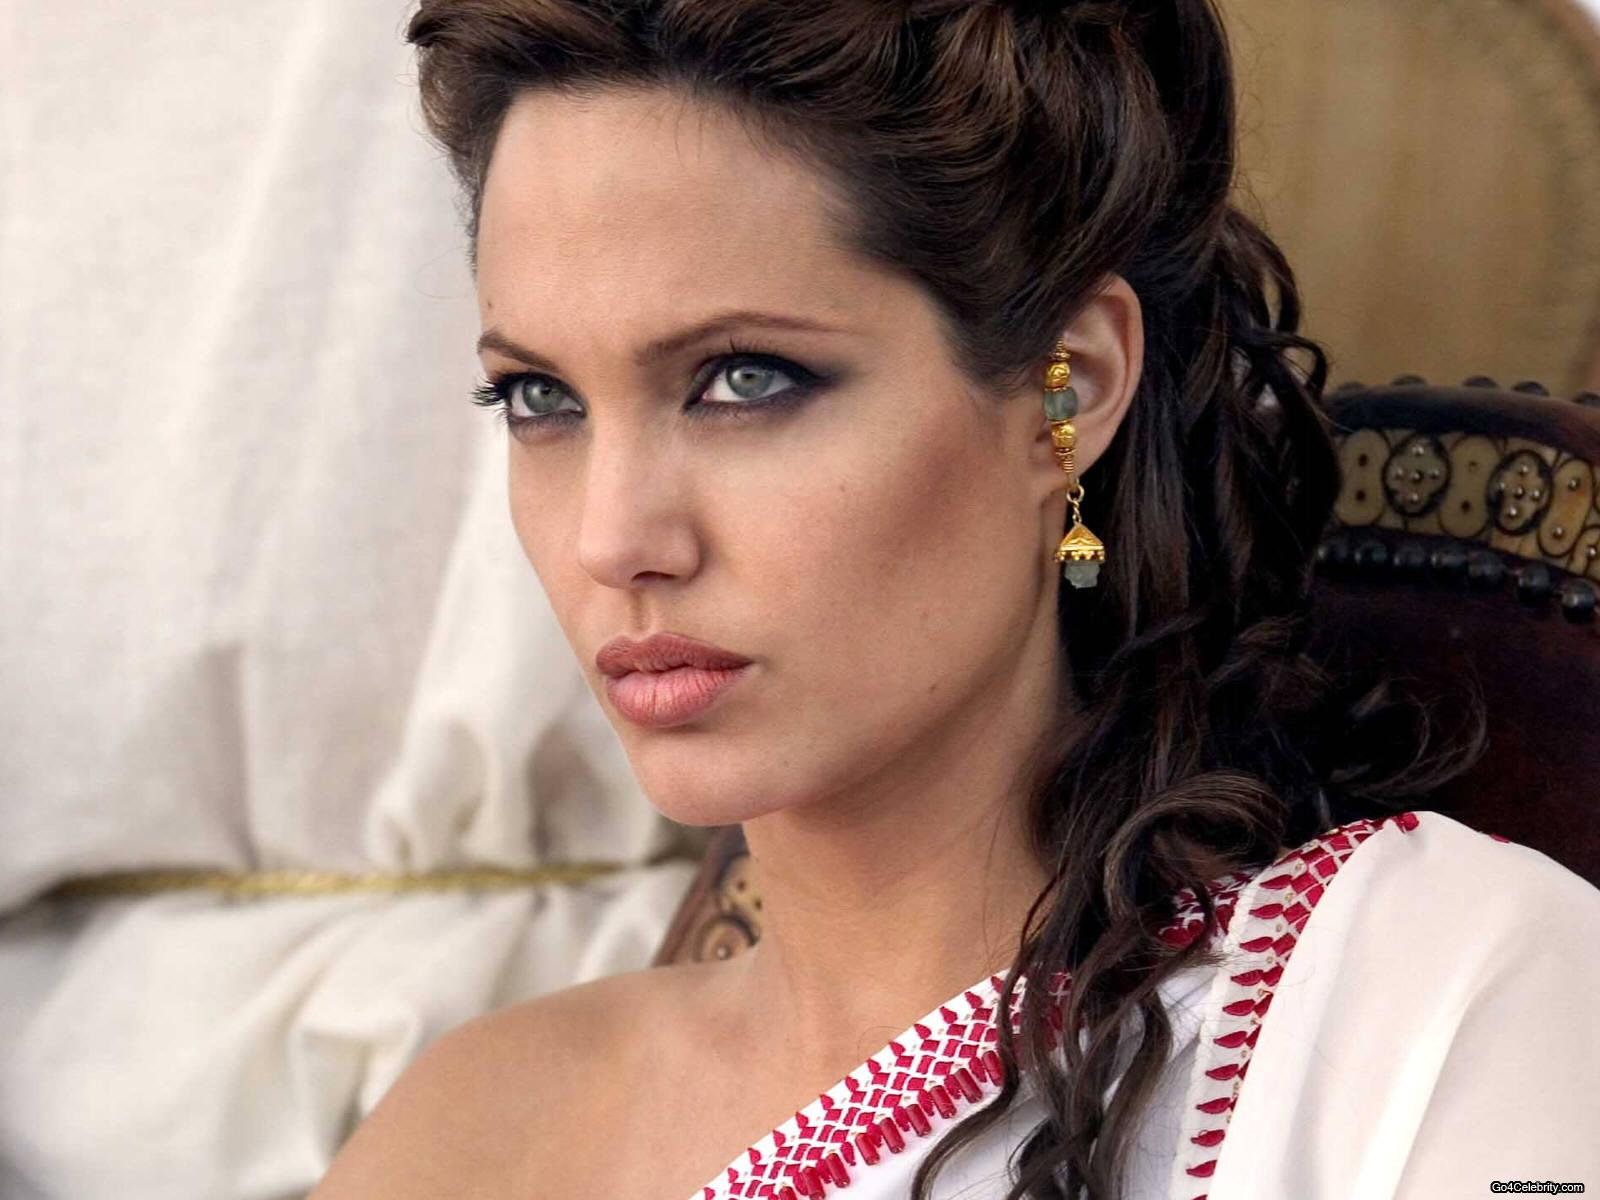 fashion & celebrity images angelina jolie hd wallpaper and